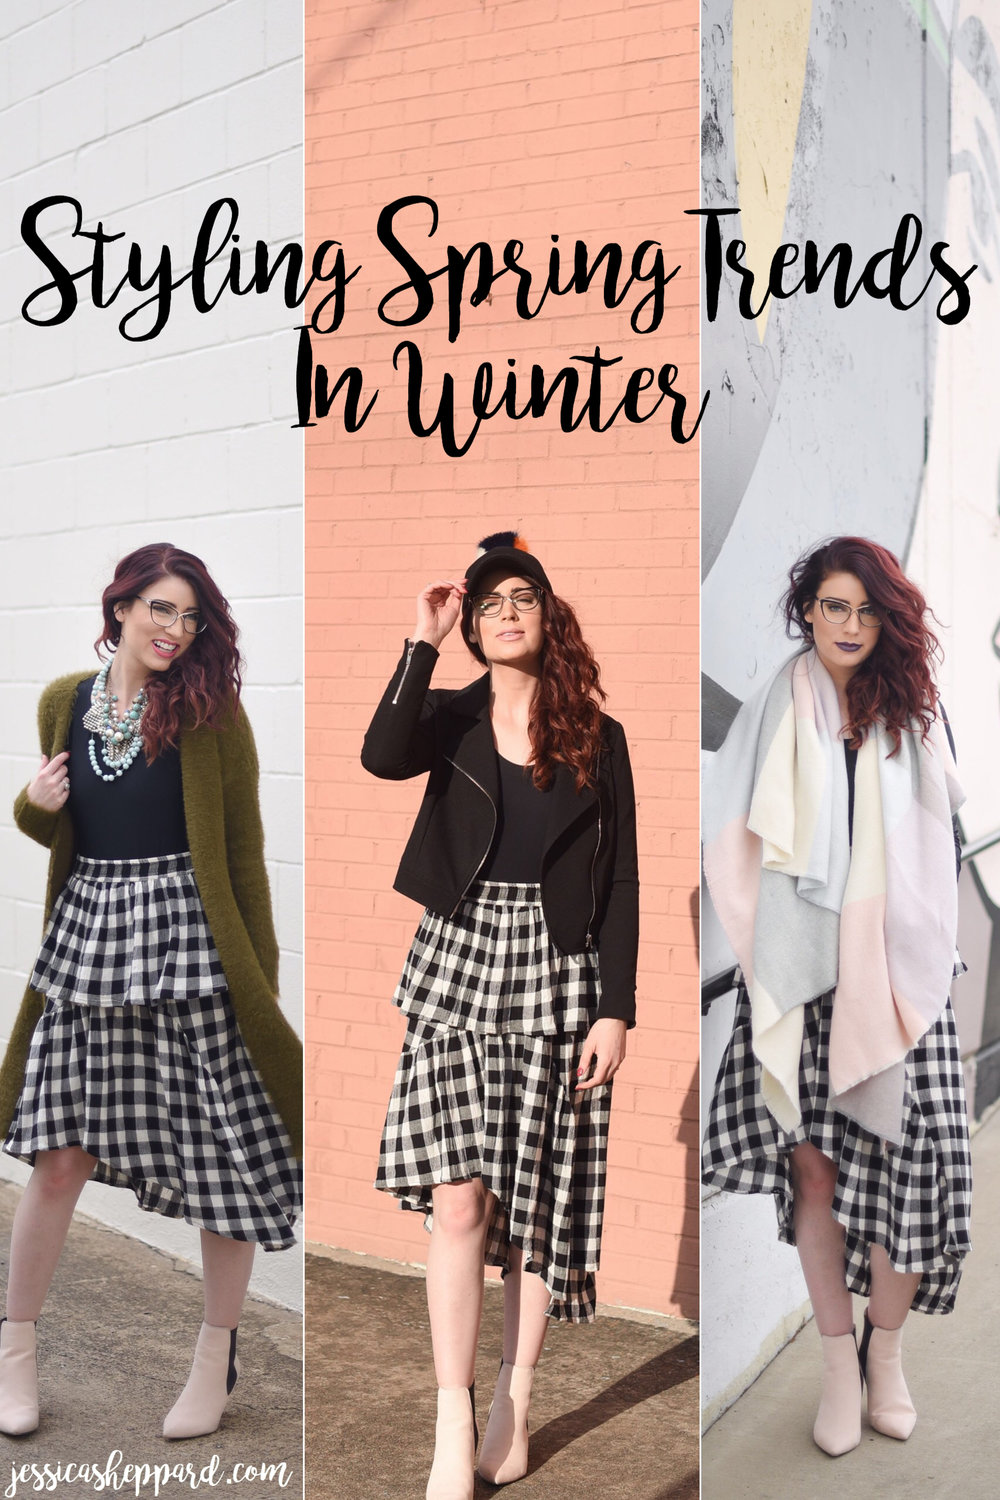 3 Ways to Wear Gingham | Styling Spring Trends in Winter